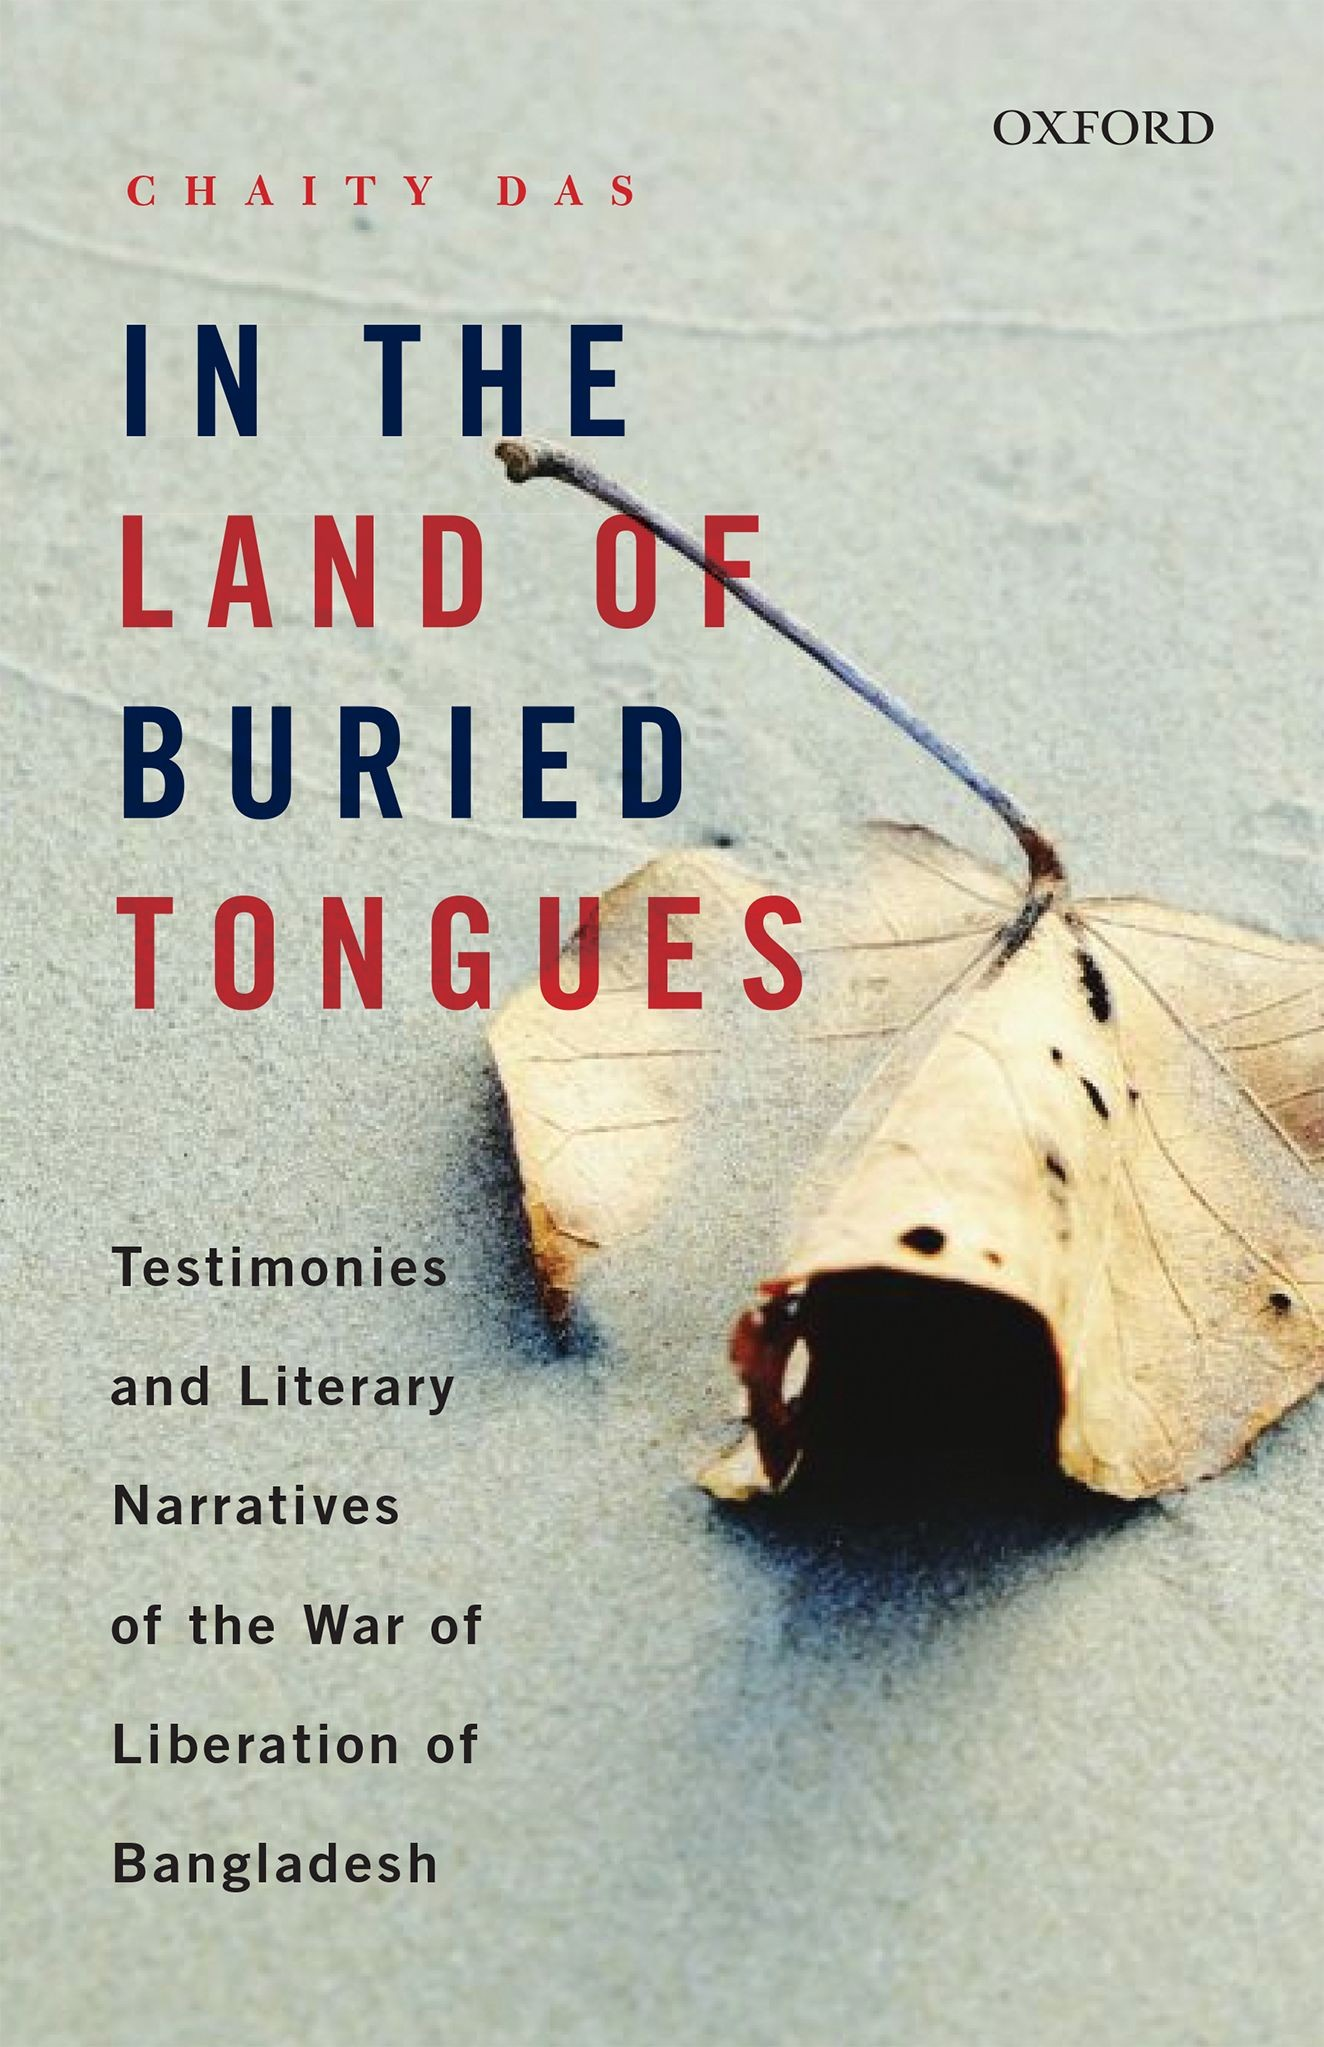 In the Land of Buried Tongues - Testimonies and Literary Narratives of the War of Liberation of Bangladesh